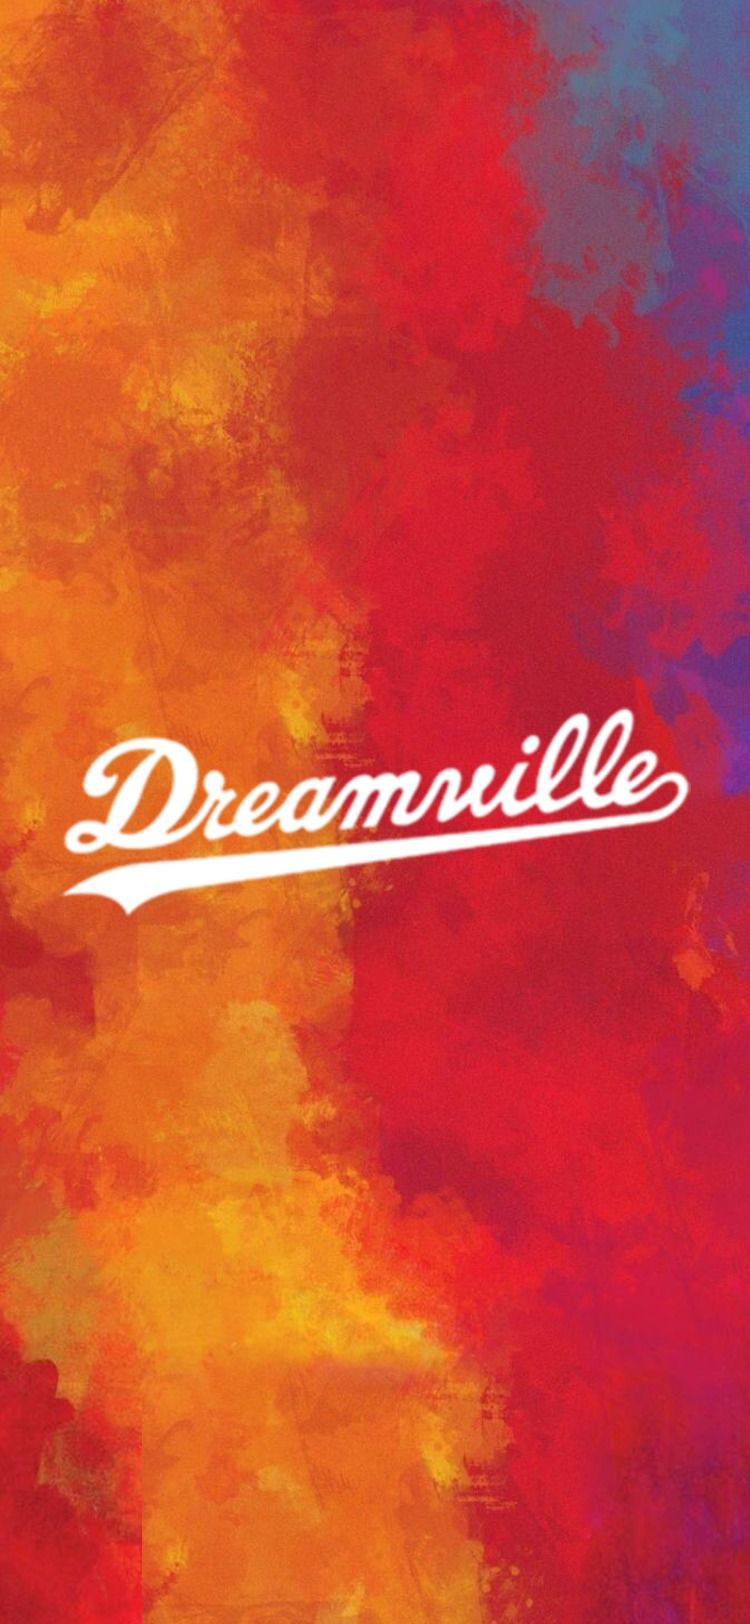 Dreamville Iphone Wallpaper